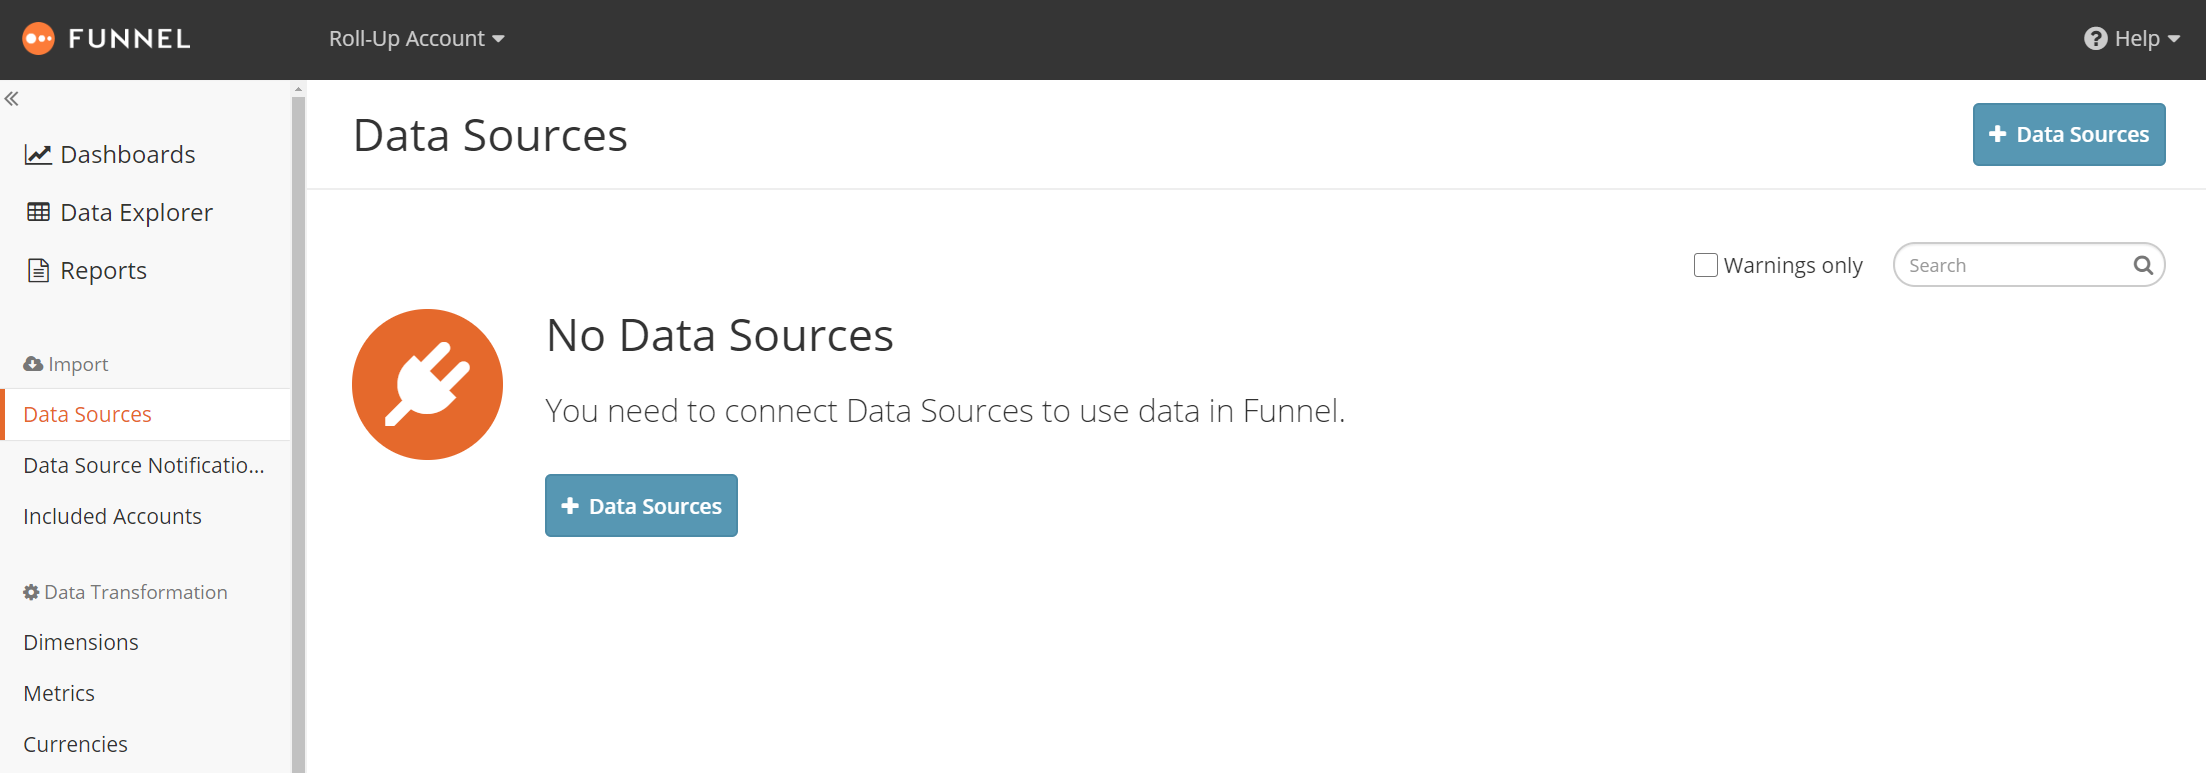 Data Sources view showing that roll-up account has no own sources